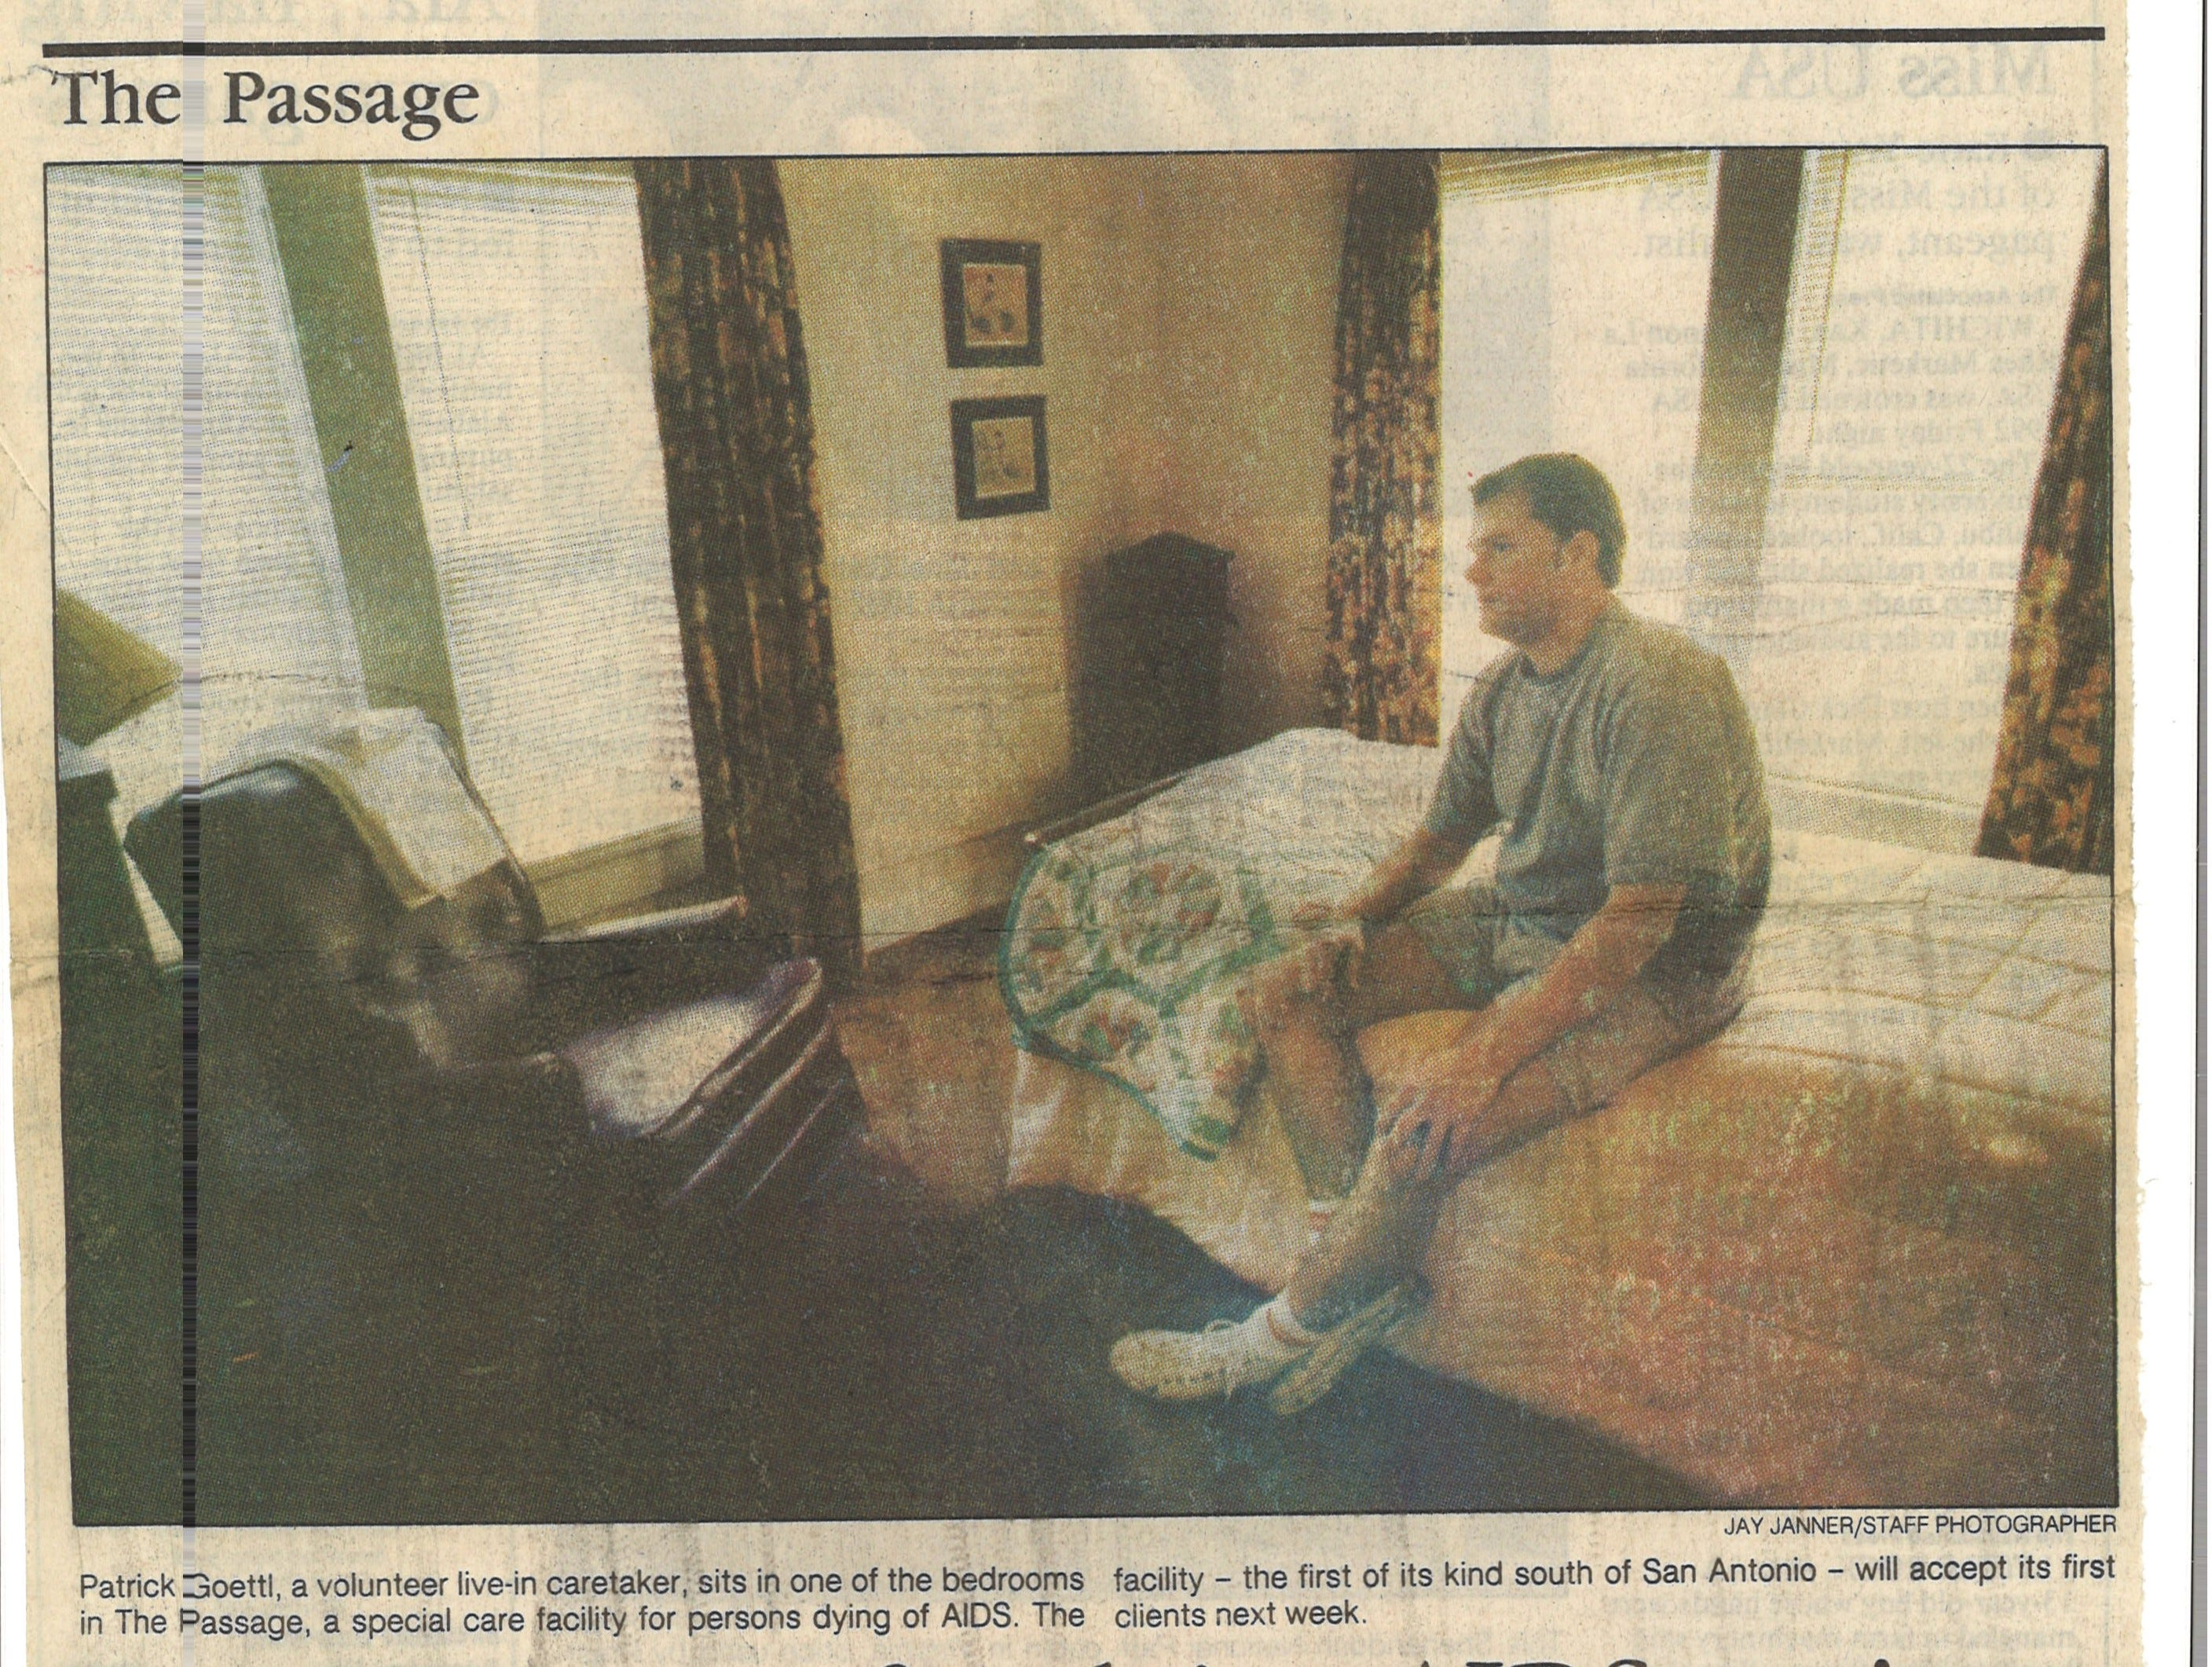 A February 8, 1992 article in the Caller-Times about plans for HIV/AIDS organization, The Passage, to soon open.